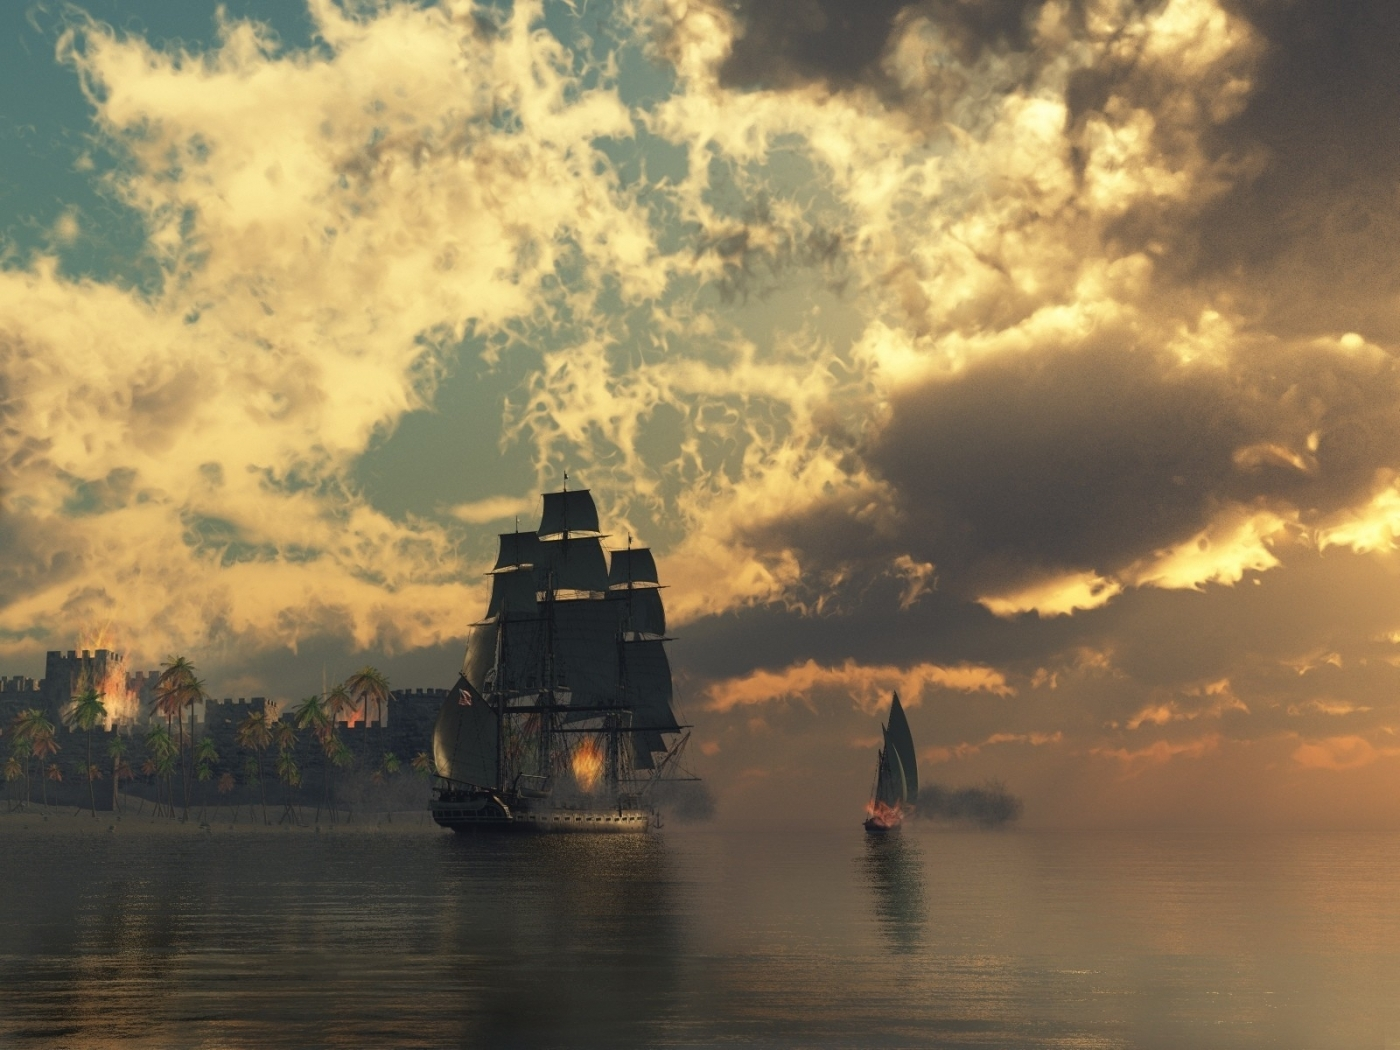 27029 download wallpaper Transport, Landscape, Ships, Sea, Clouds, Pictures screensavers and pictures for free